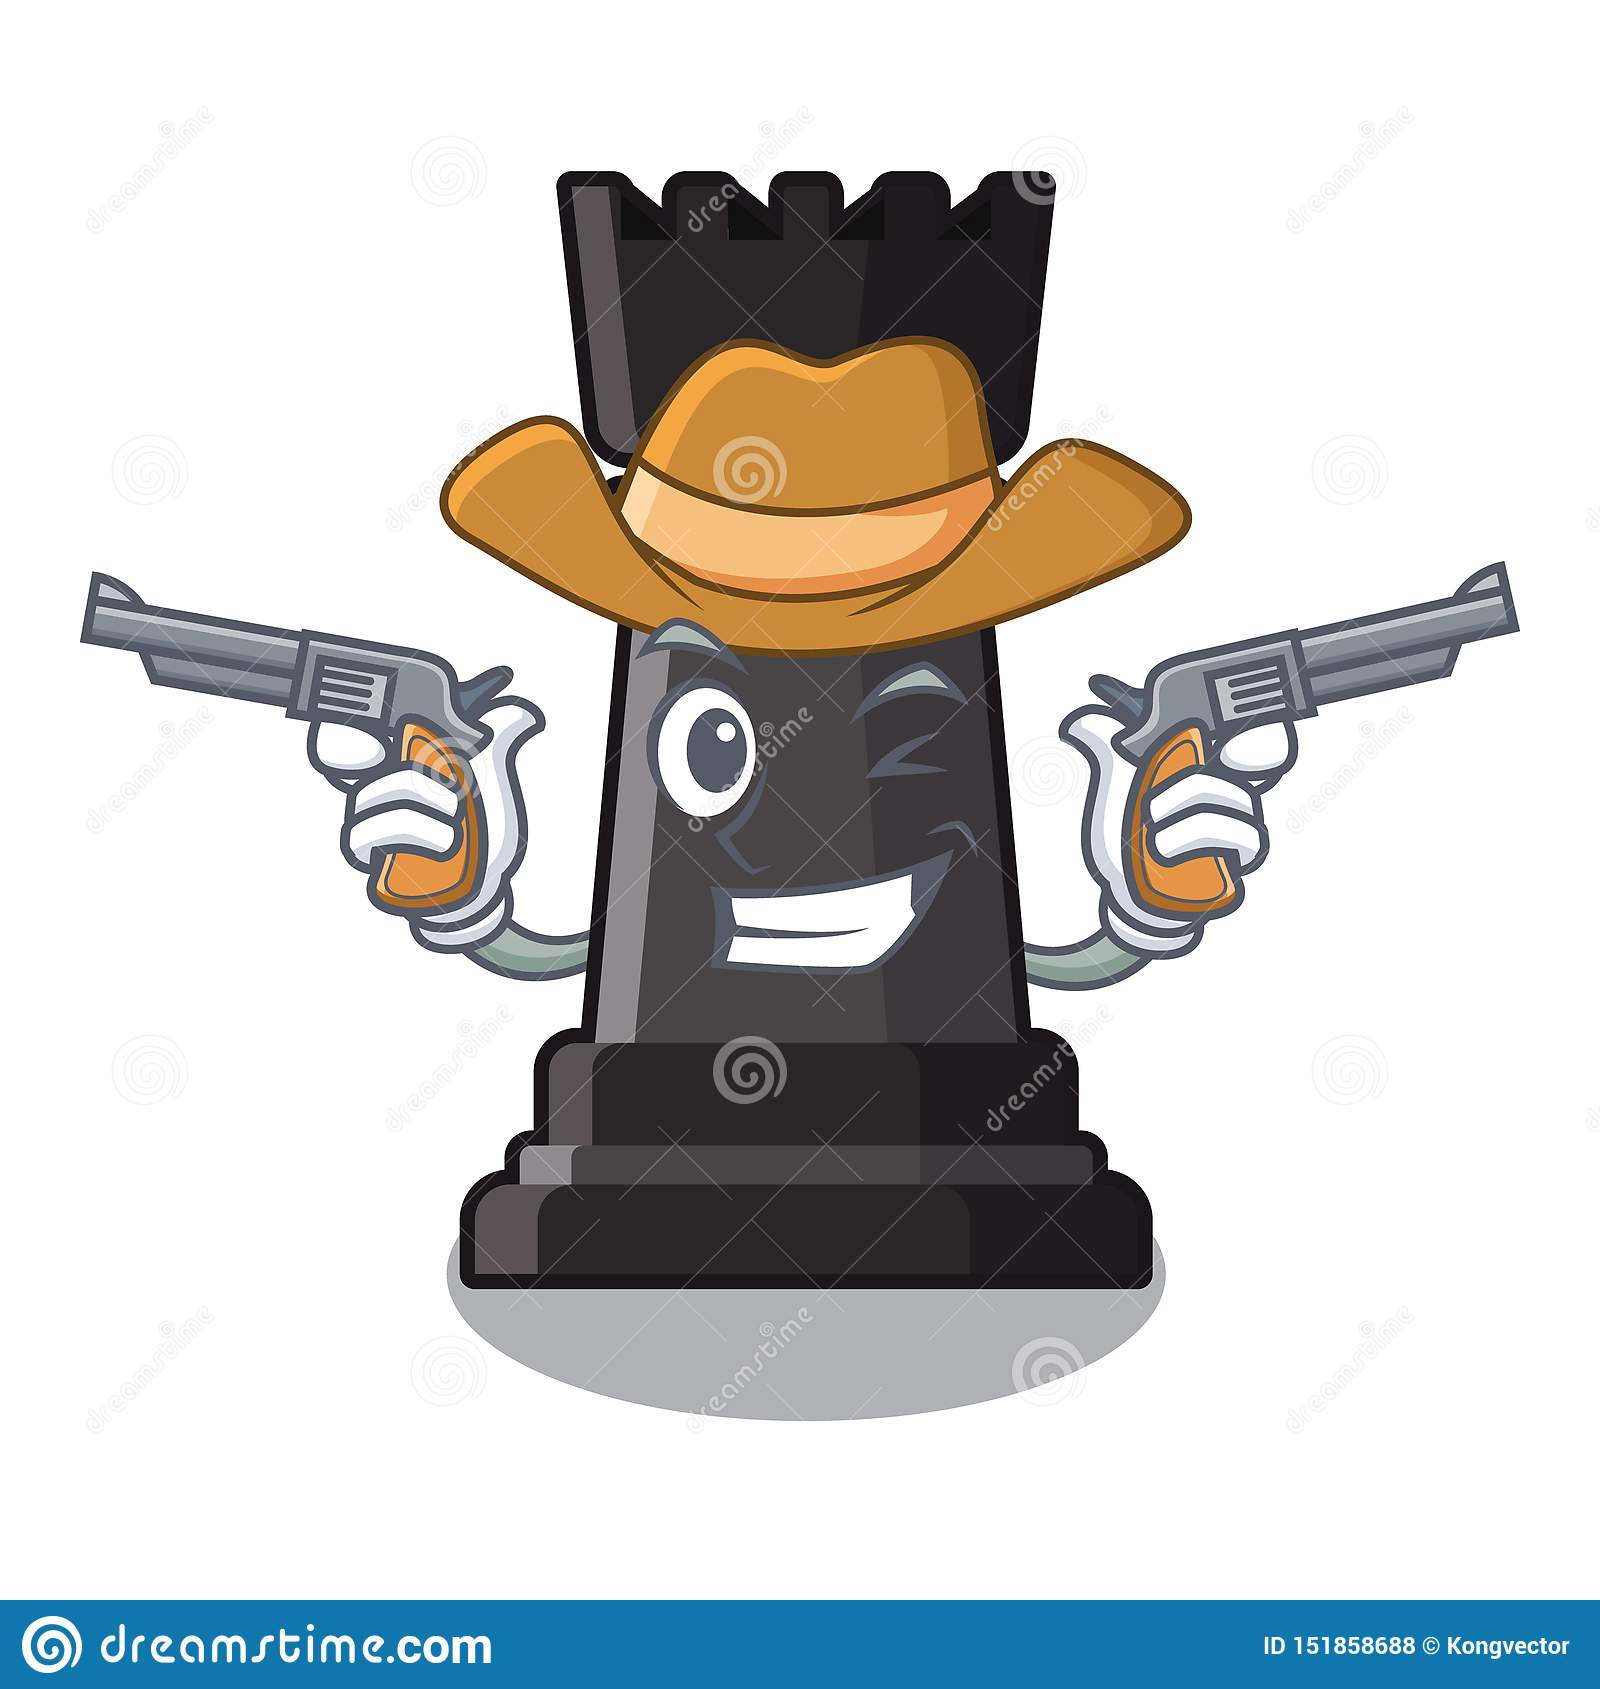 Cowboy rook chess toys above cartoon table